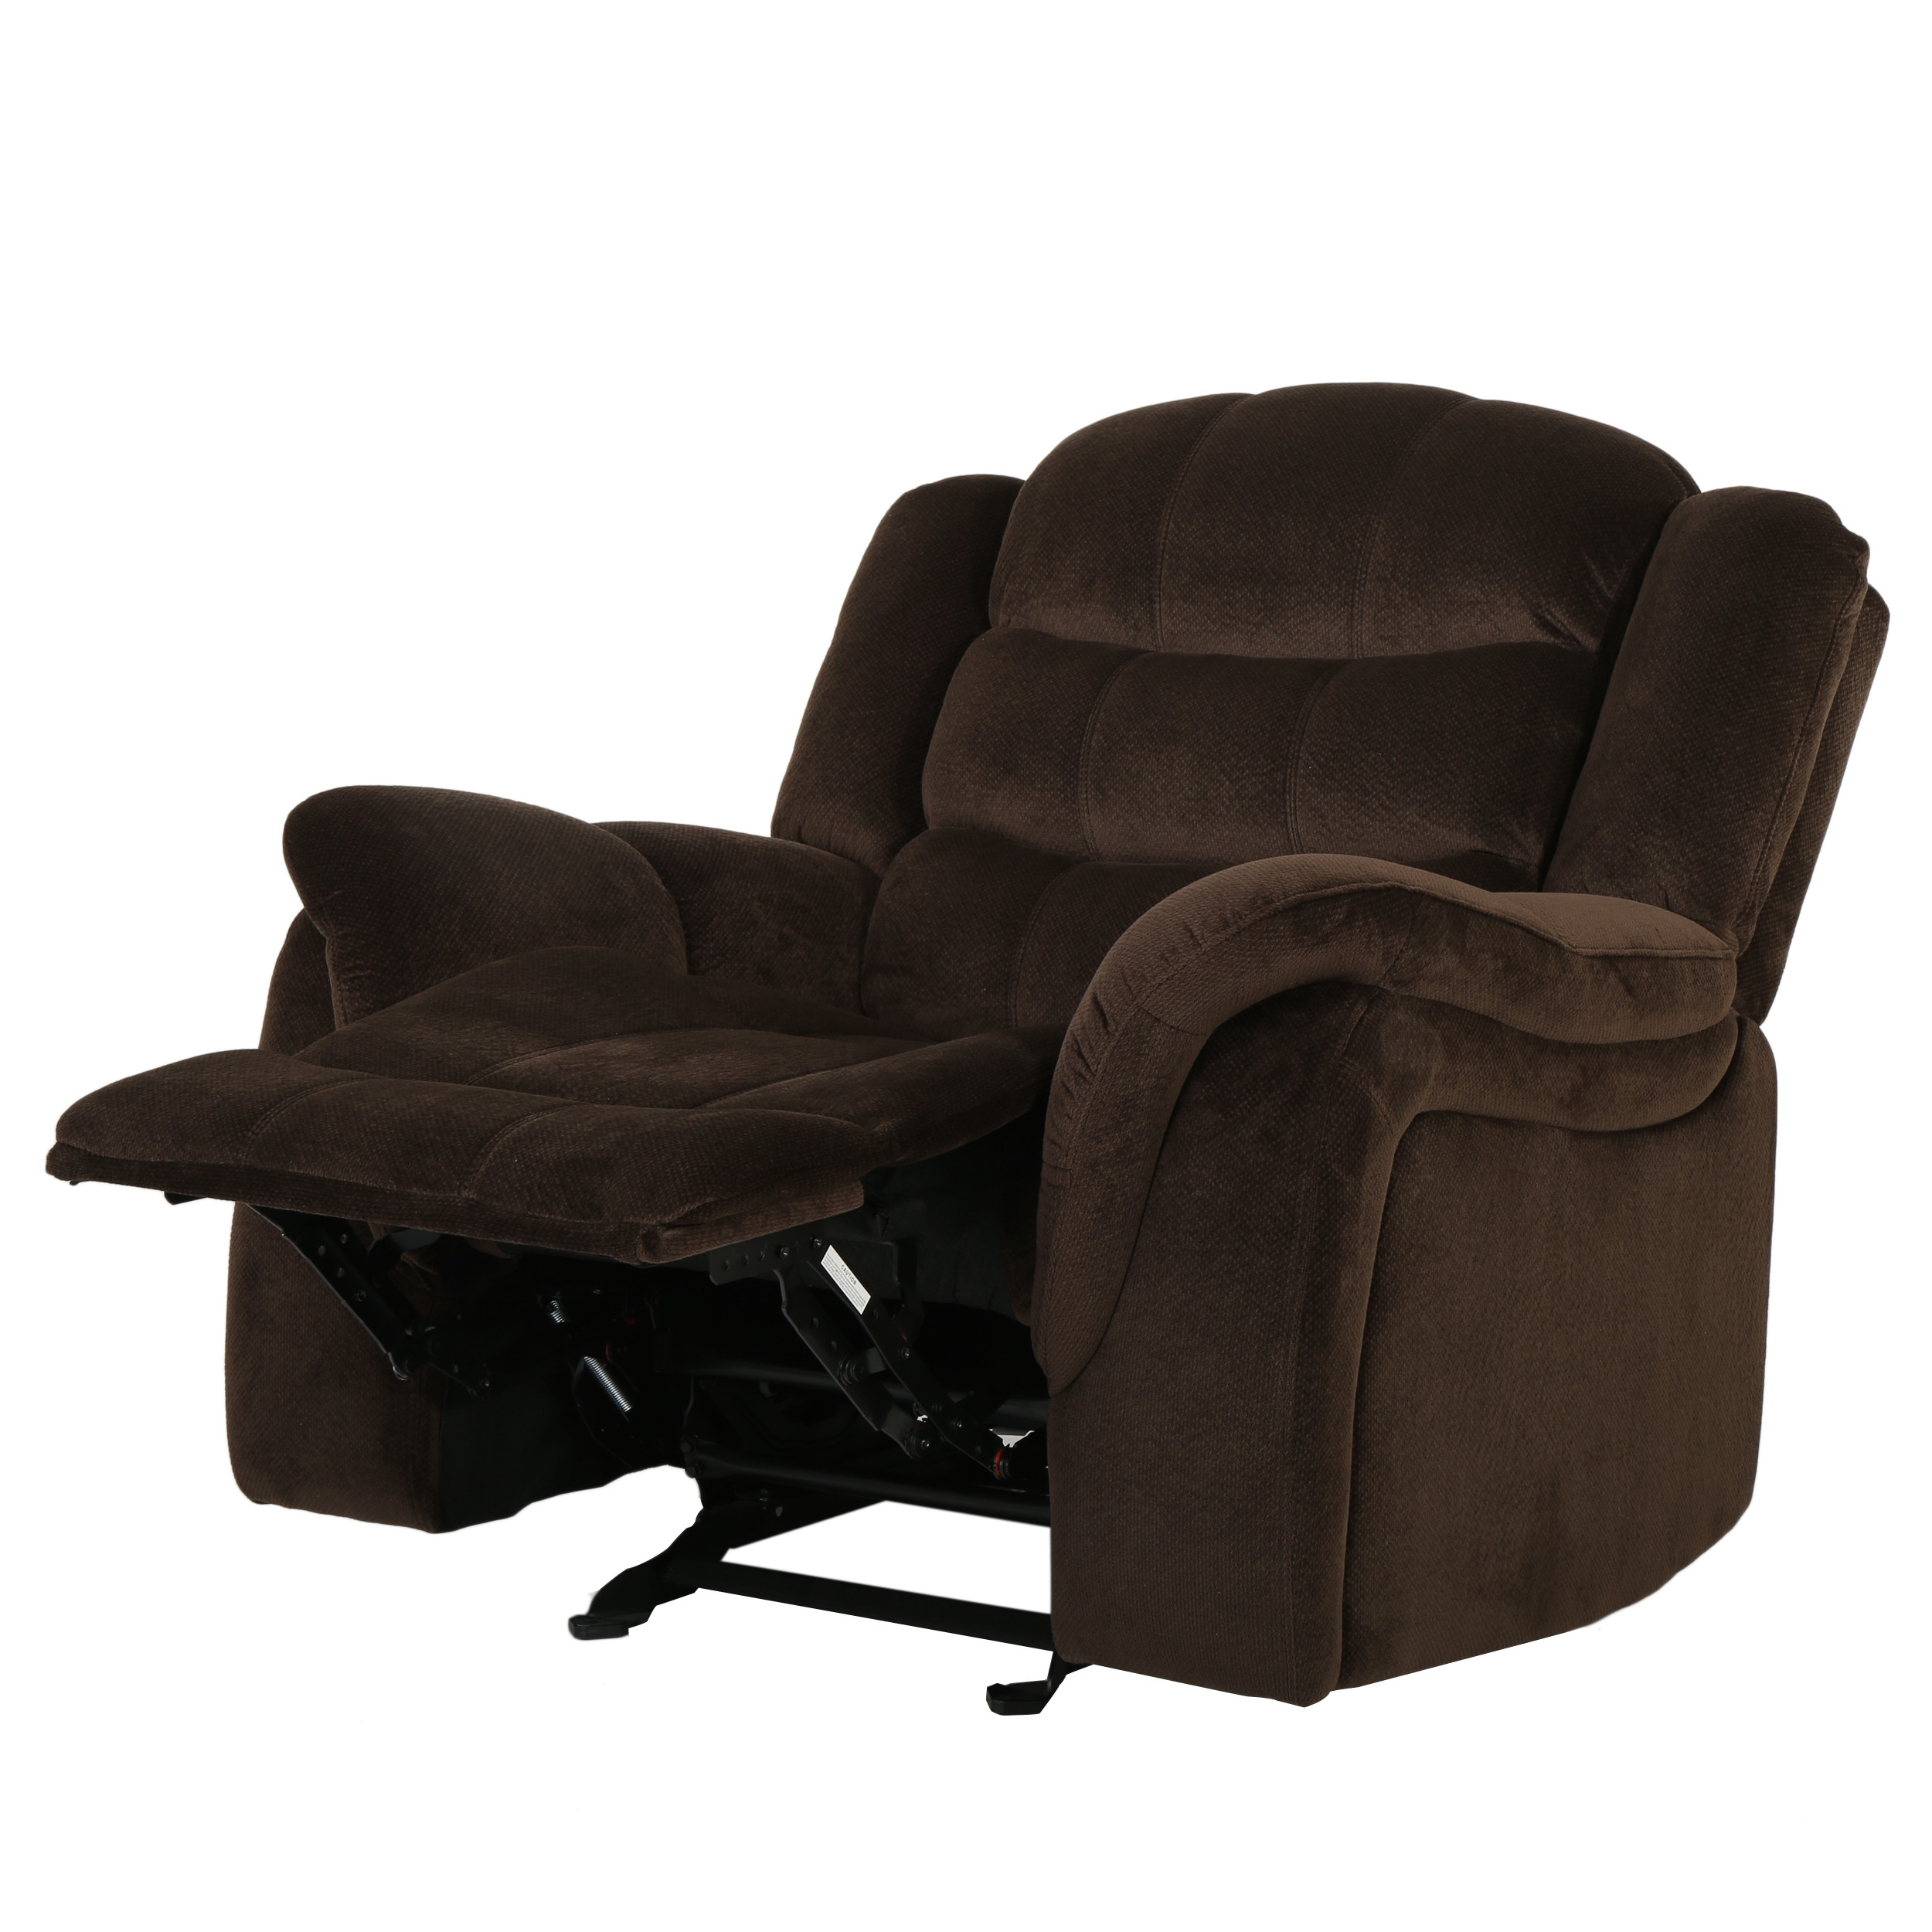 Classy Glider Recliner for Home Furniture Idea Glider Recliner | Reclining Glider With Ottoman |  sc 1 st  Marccharlessteakhouse.com & Furniture u0026 Rug: Glider Recliner | Reclining Glider With Ottoman ... islam-shia.org